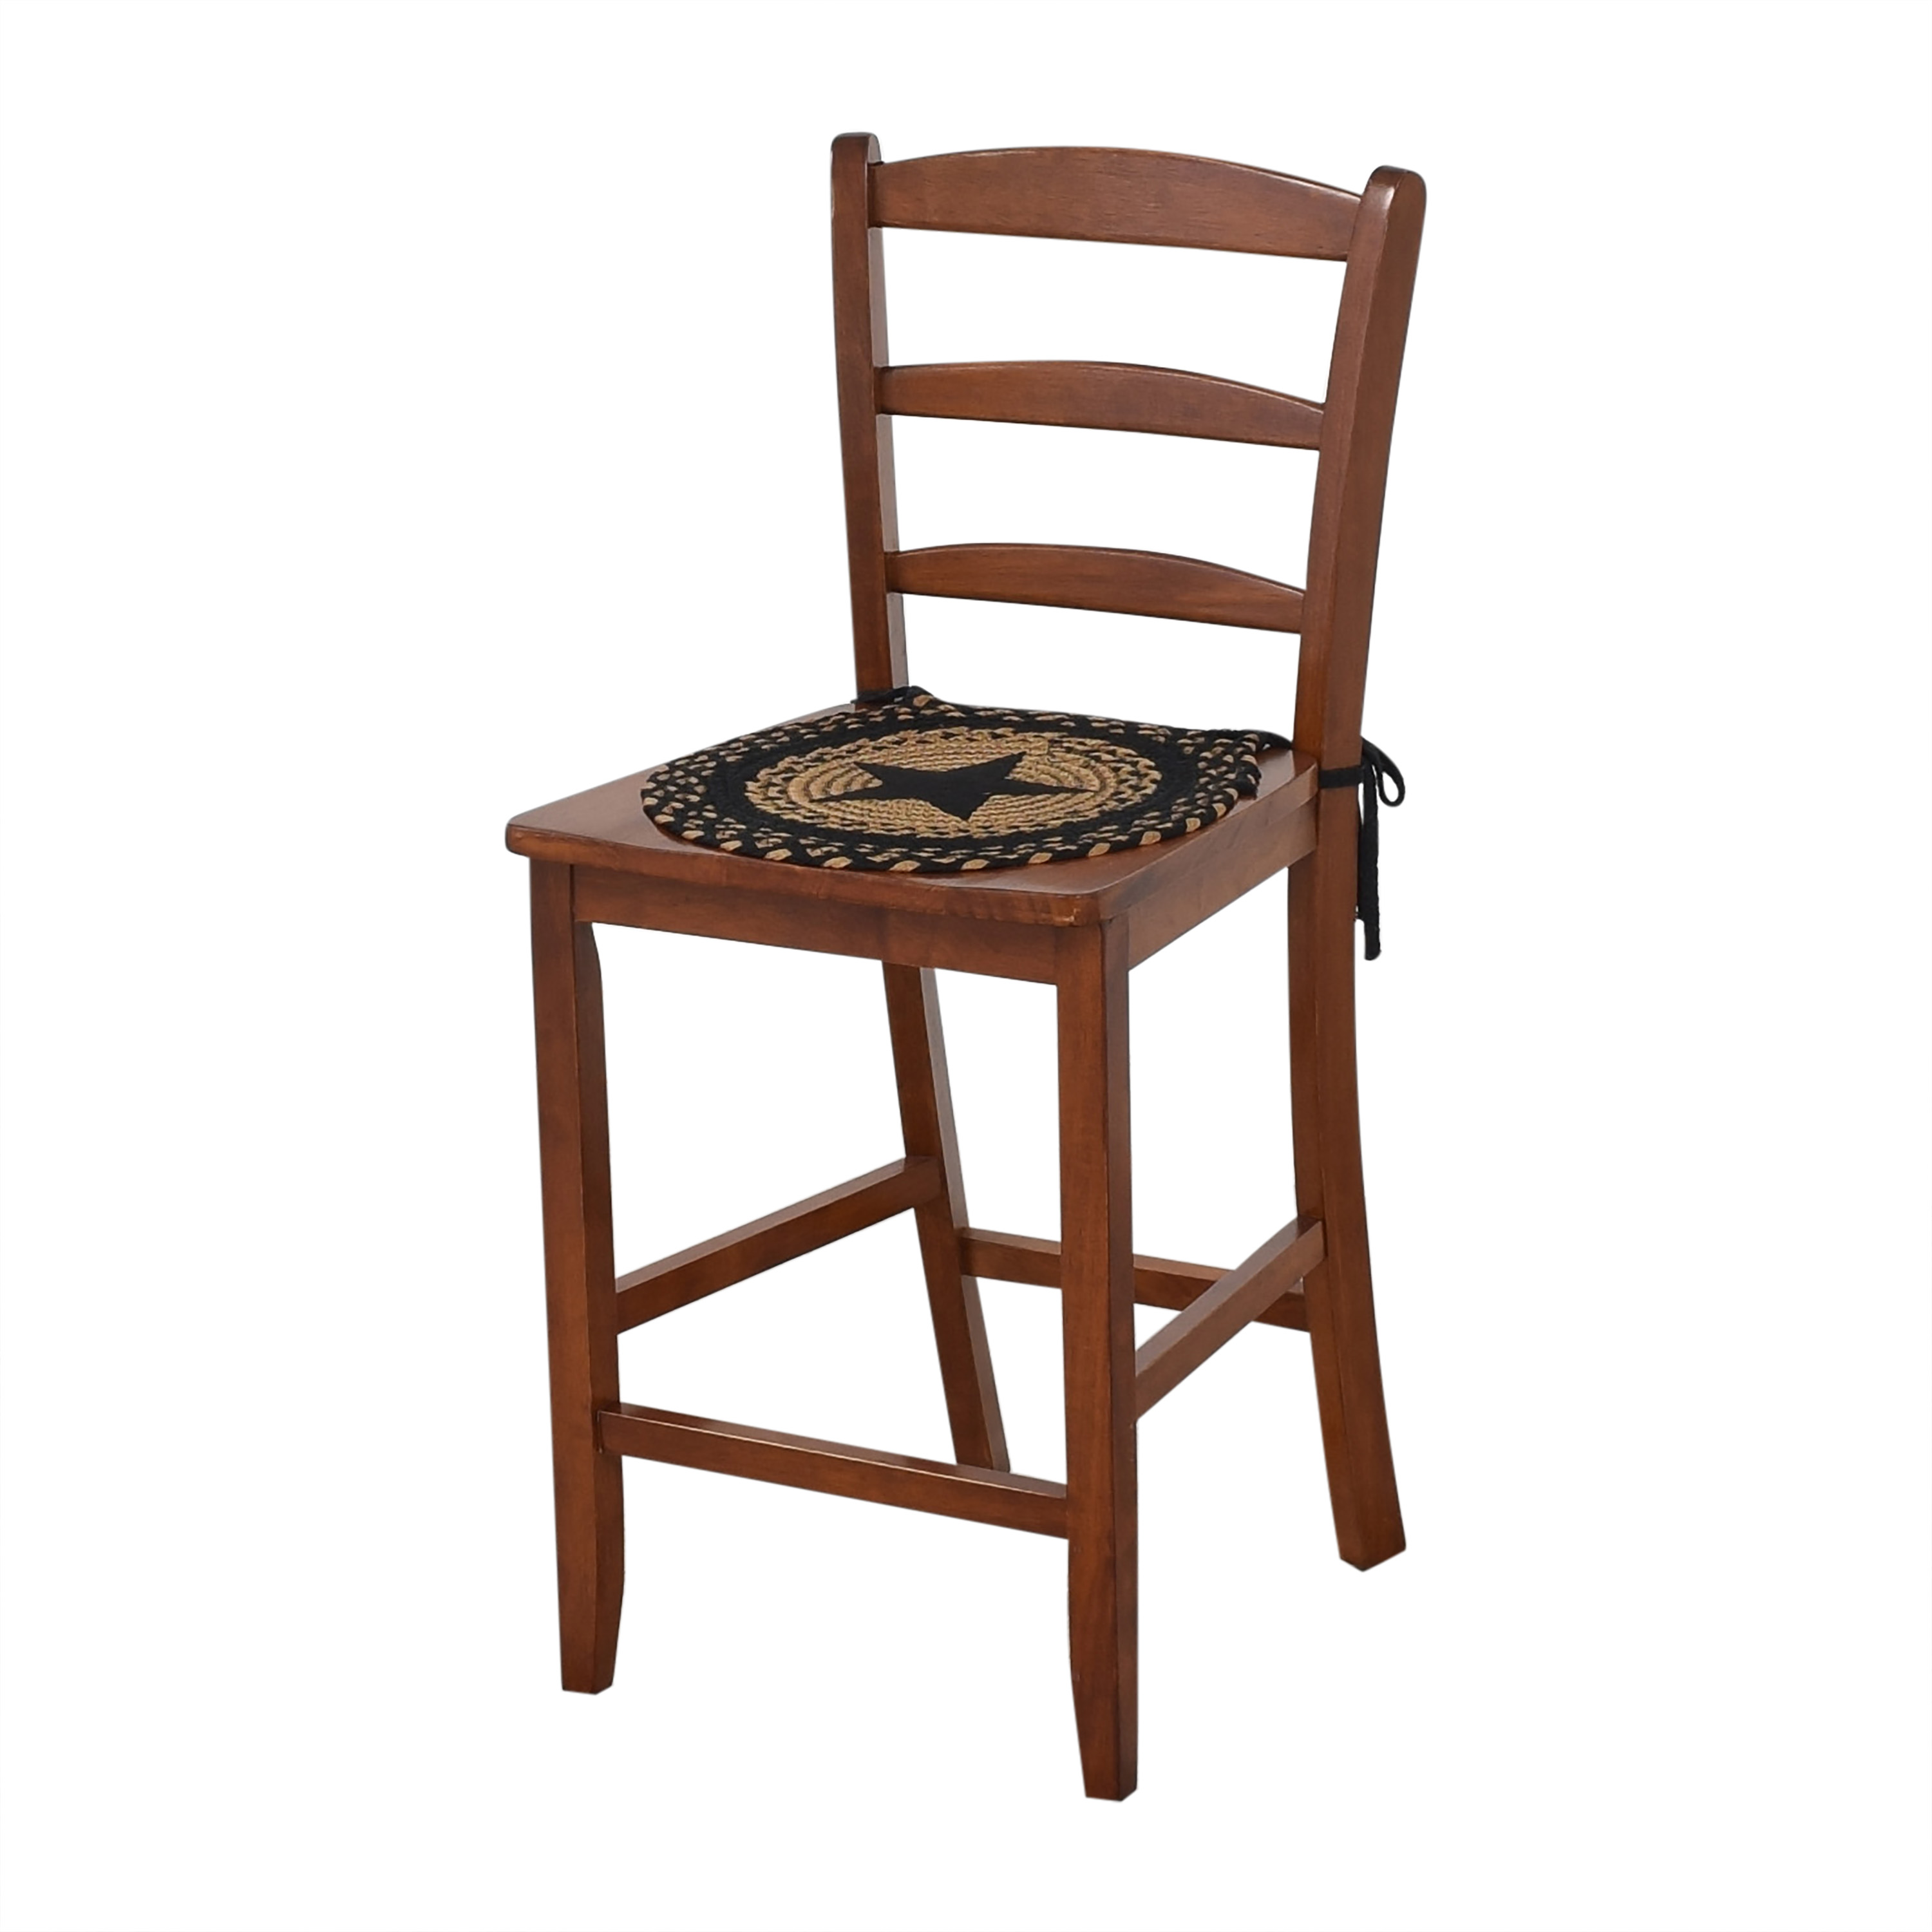 Winsome Wood Albany Ladder Back Counter Stools / Chairs